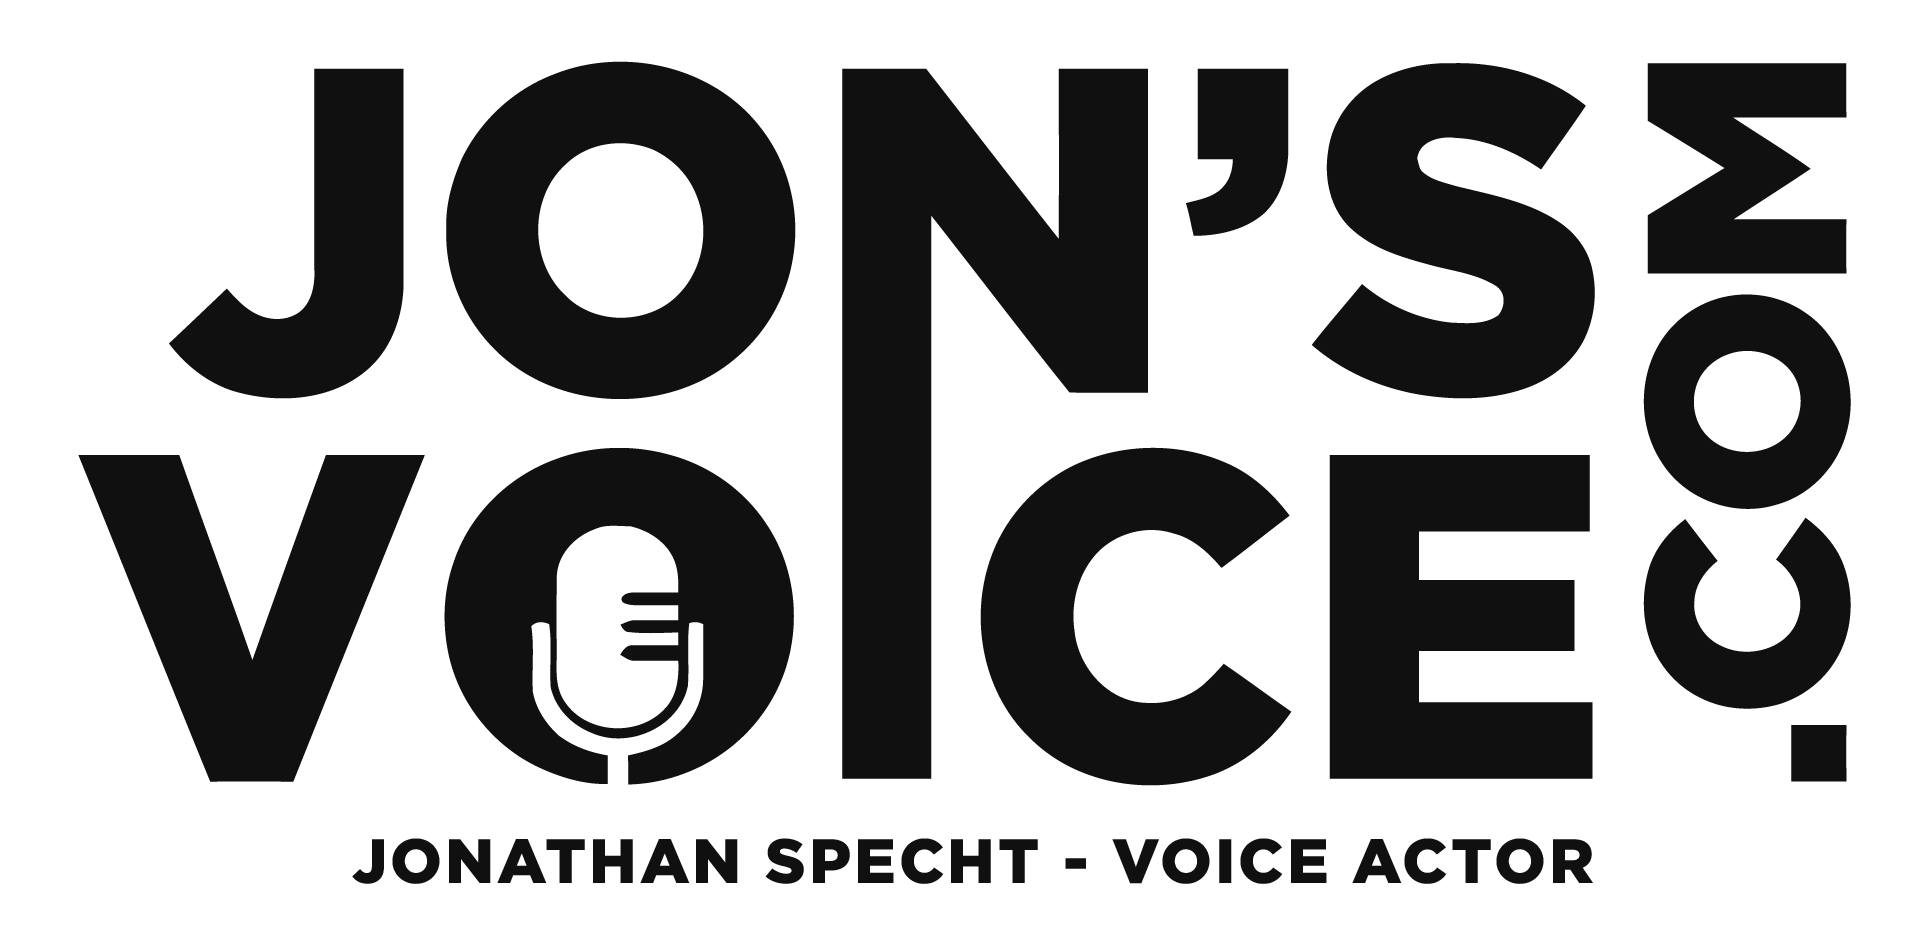 Jon's Voice - Professional Voice Actor Jon Specht